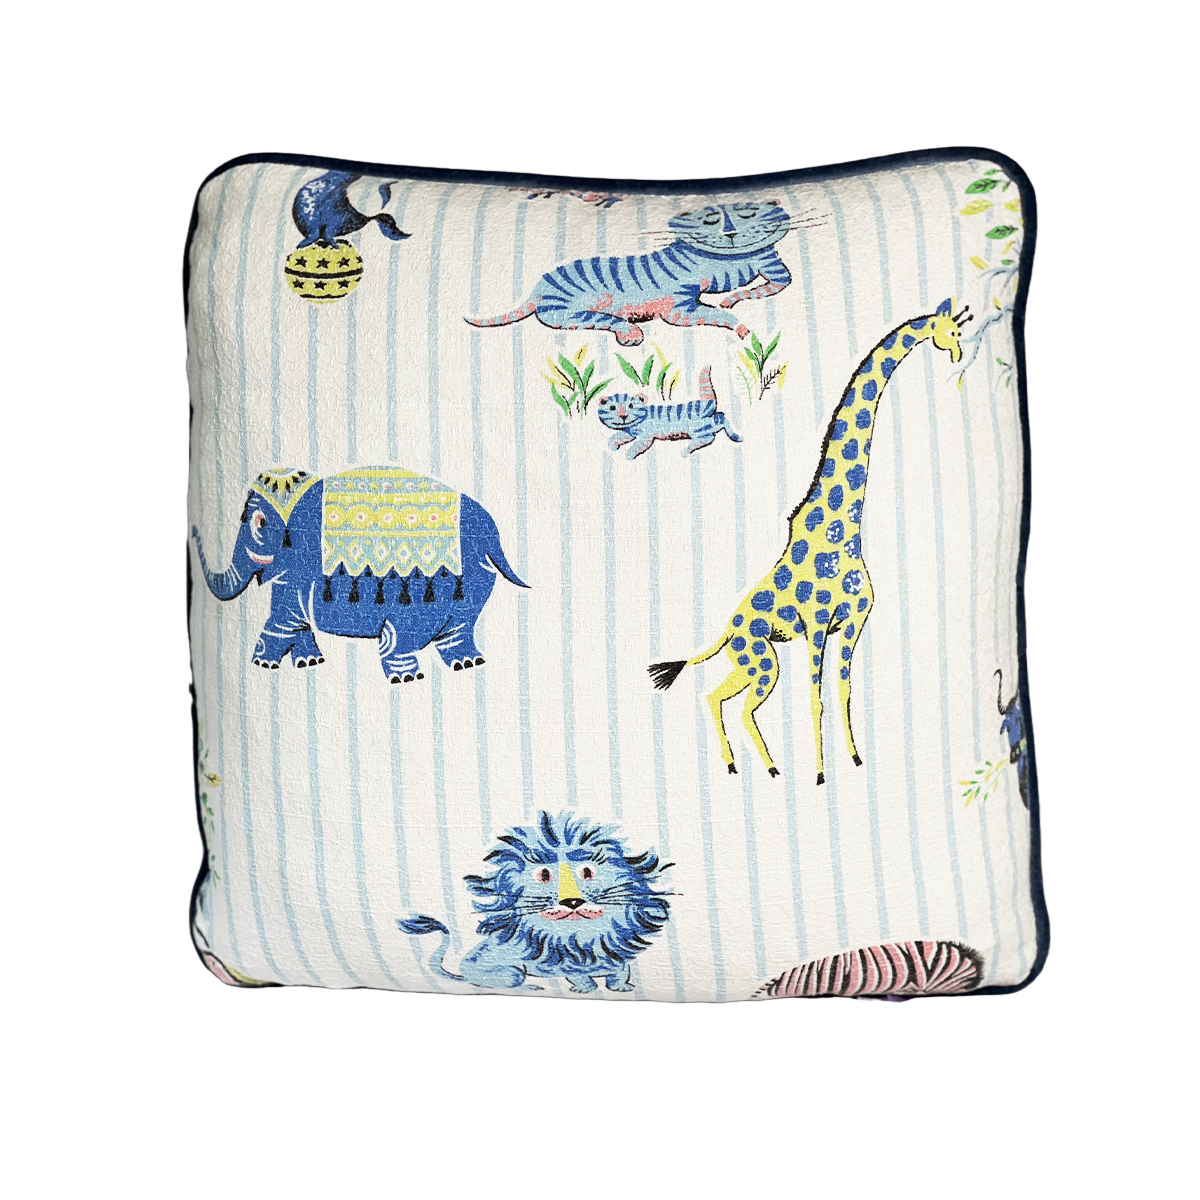 Lions and Tigers- Single Pillow 1 18 x 18